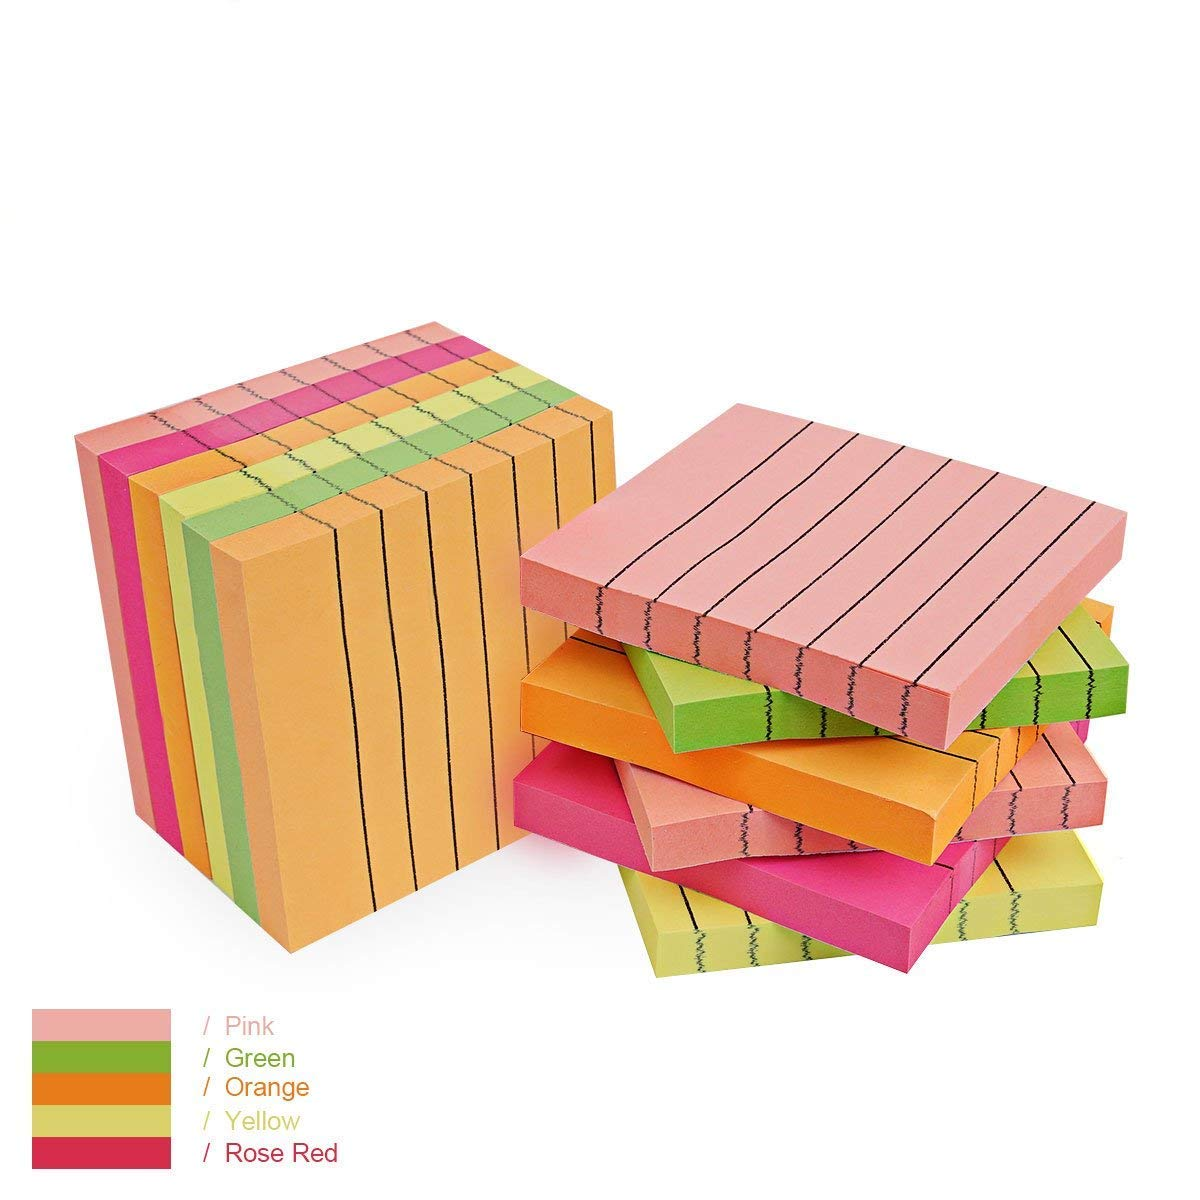 Sticky Notes Lined 12 Pads, 3 in x 3 in,100 Sheets/Pad, 5 Assorted Bright Colors Super Sticky Note Pads, Easy to Post for Home, Office